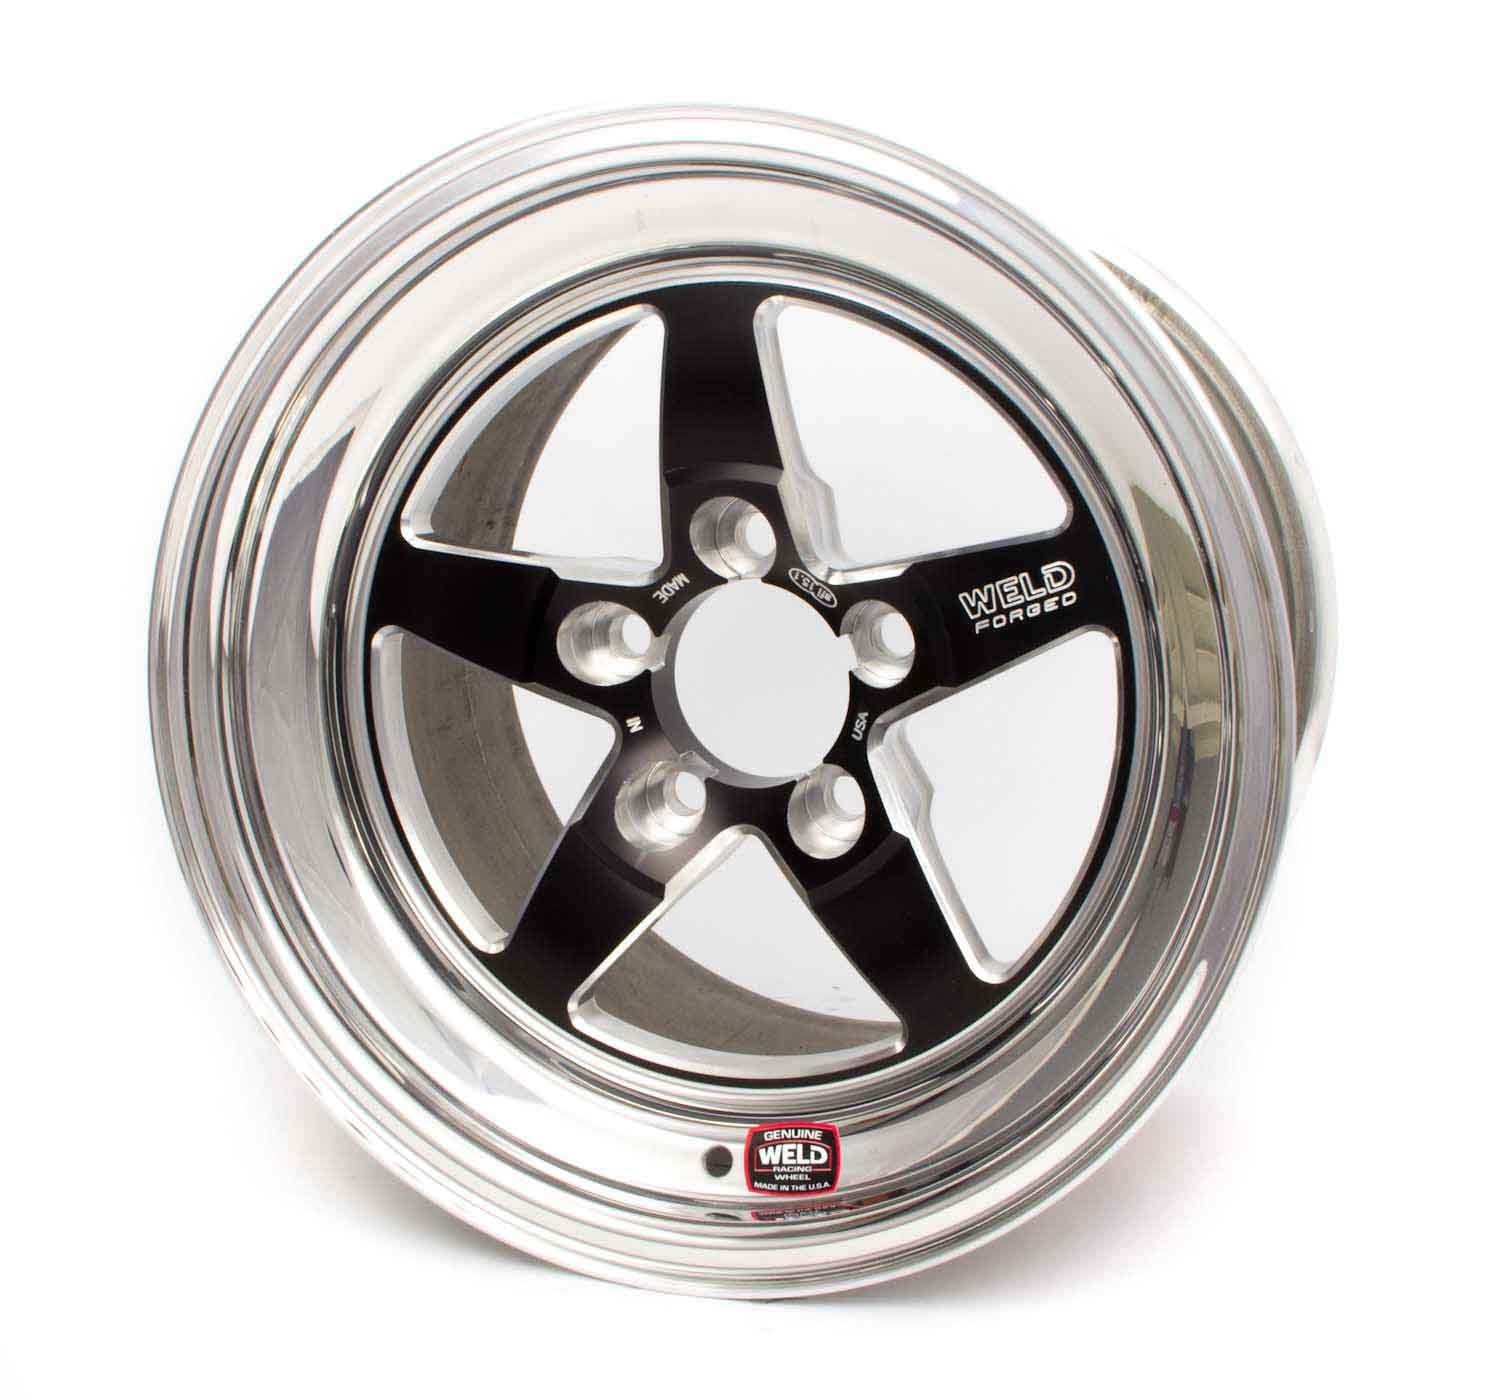 15x4.075 RT-S Wheel 5x4.75 BC 1.5BS Black